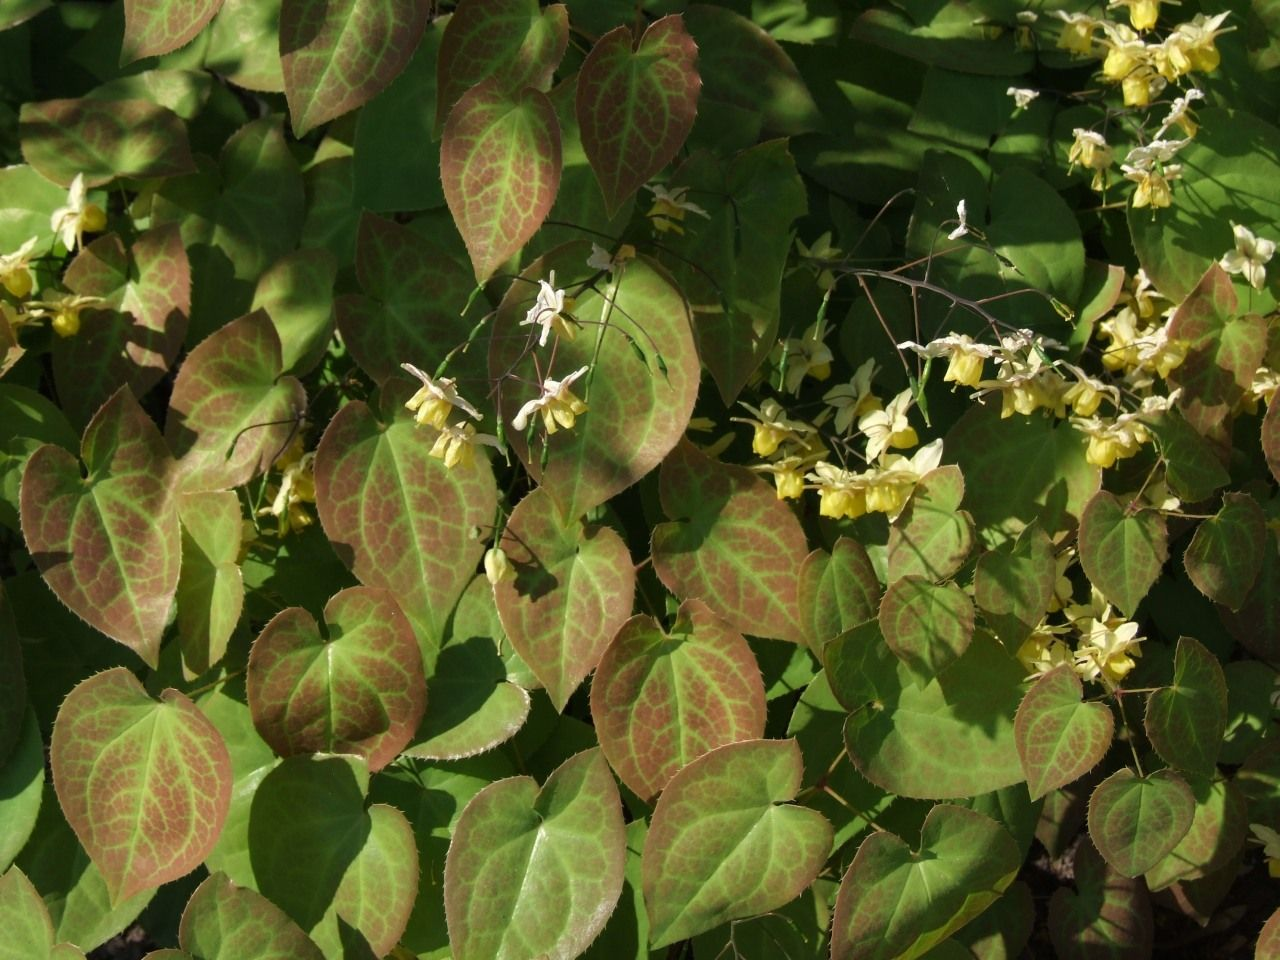 Epimedium Interesting Ground Cover With Heart Shaped Leaves And